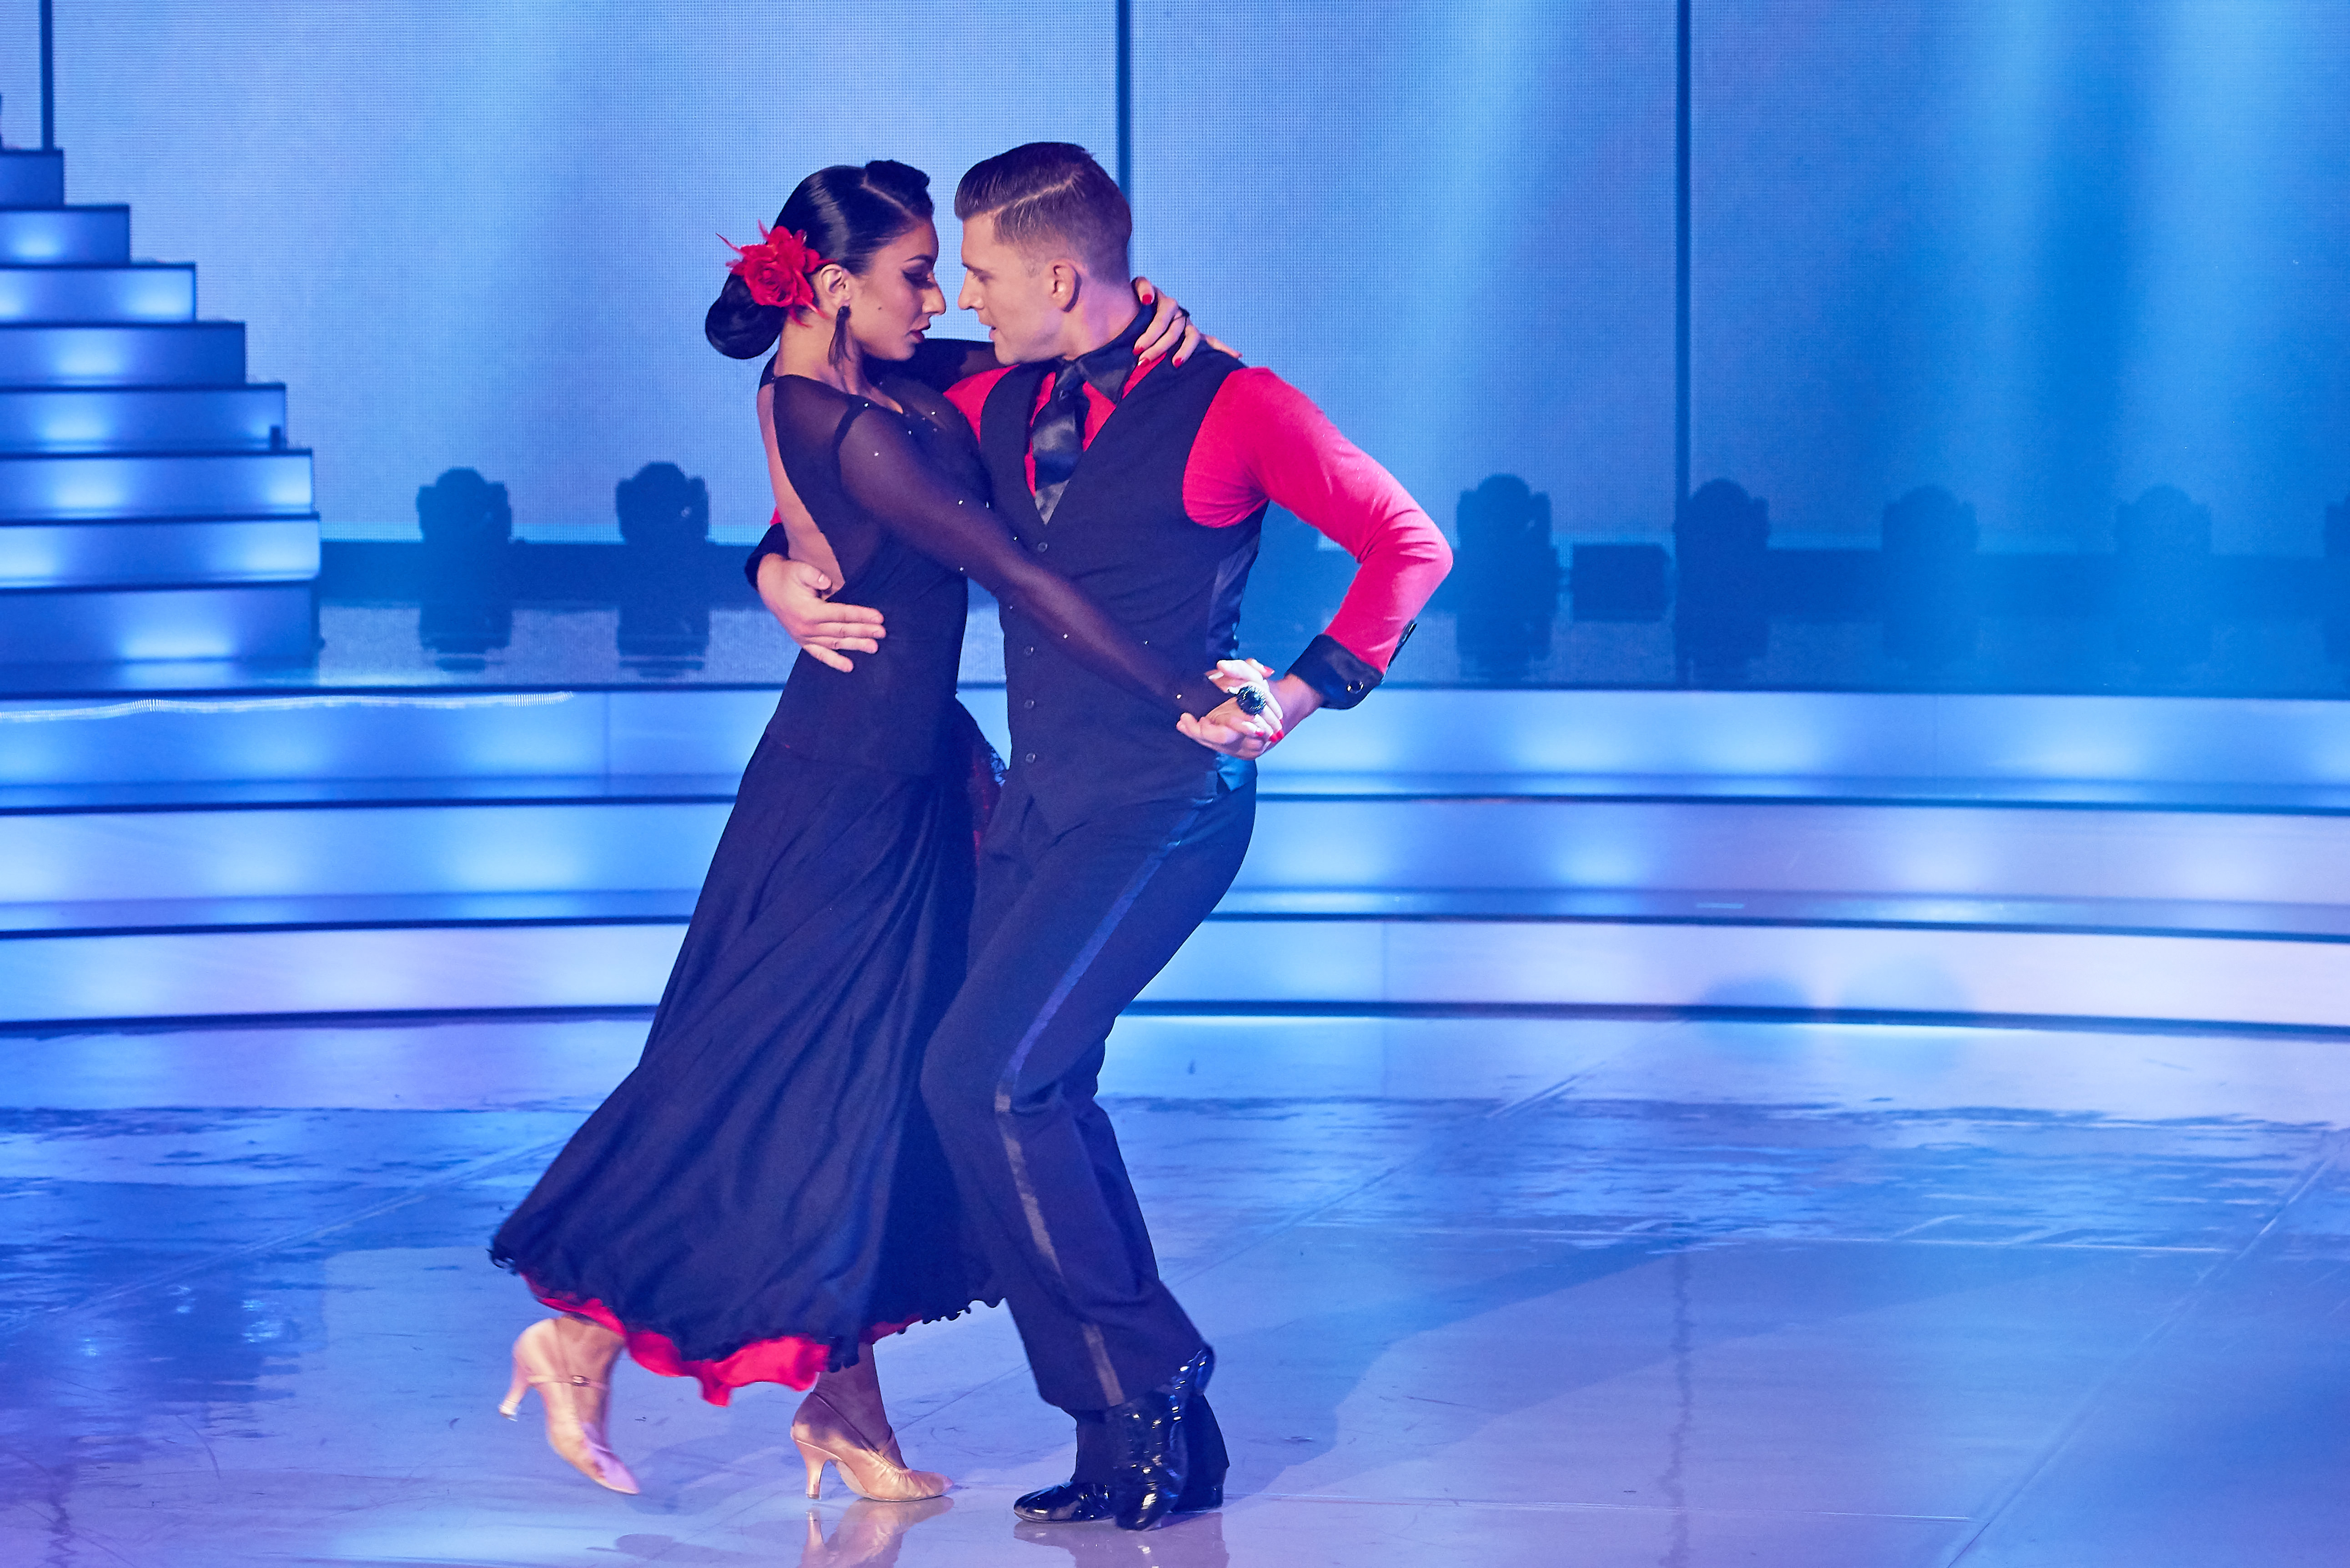 Dancing with the Stars v Survivor NZ: Thailand - Who is winning the